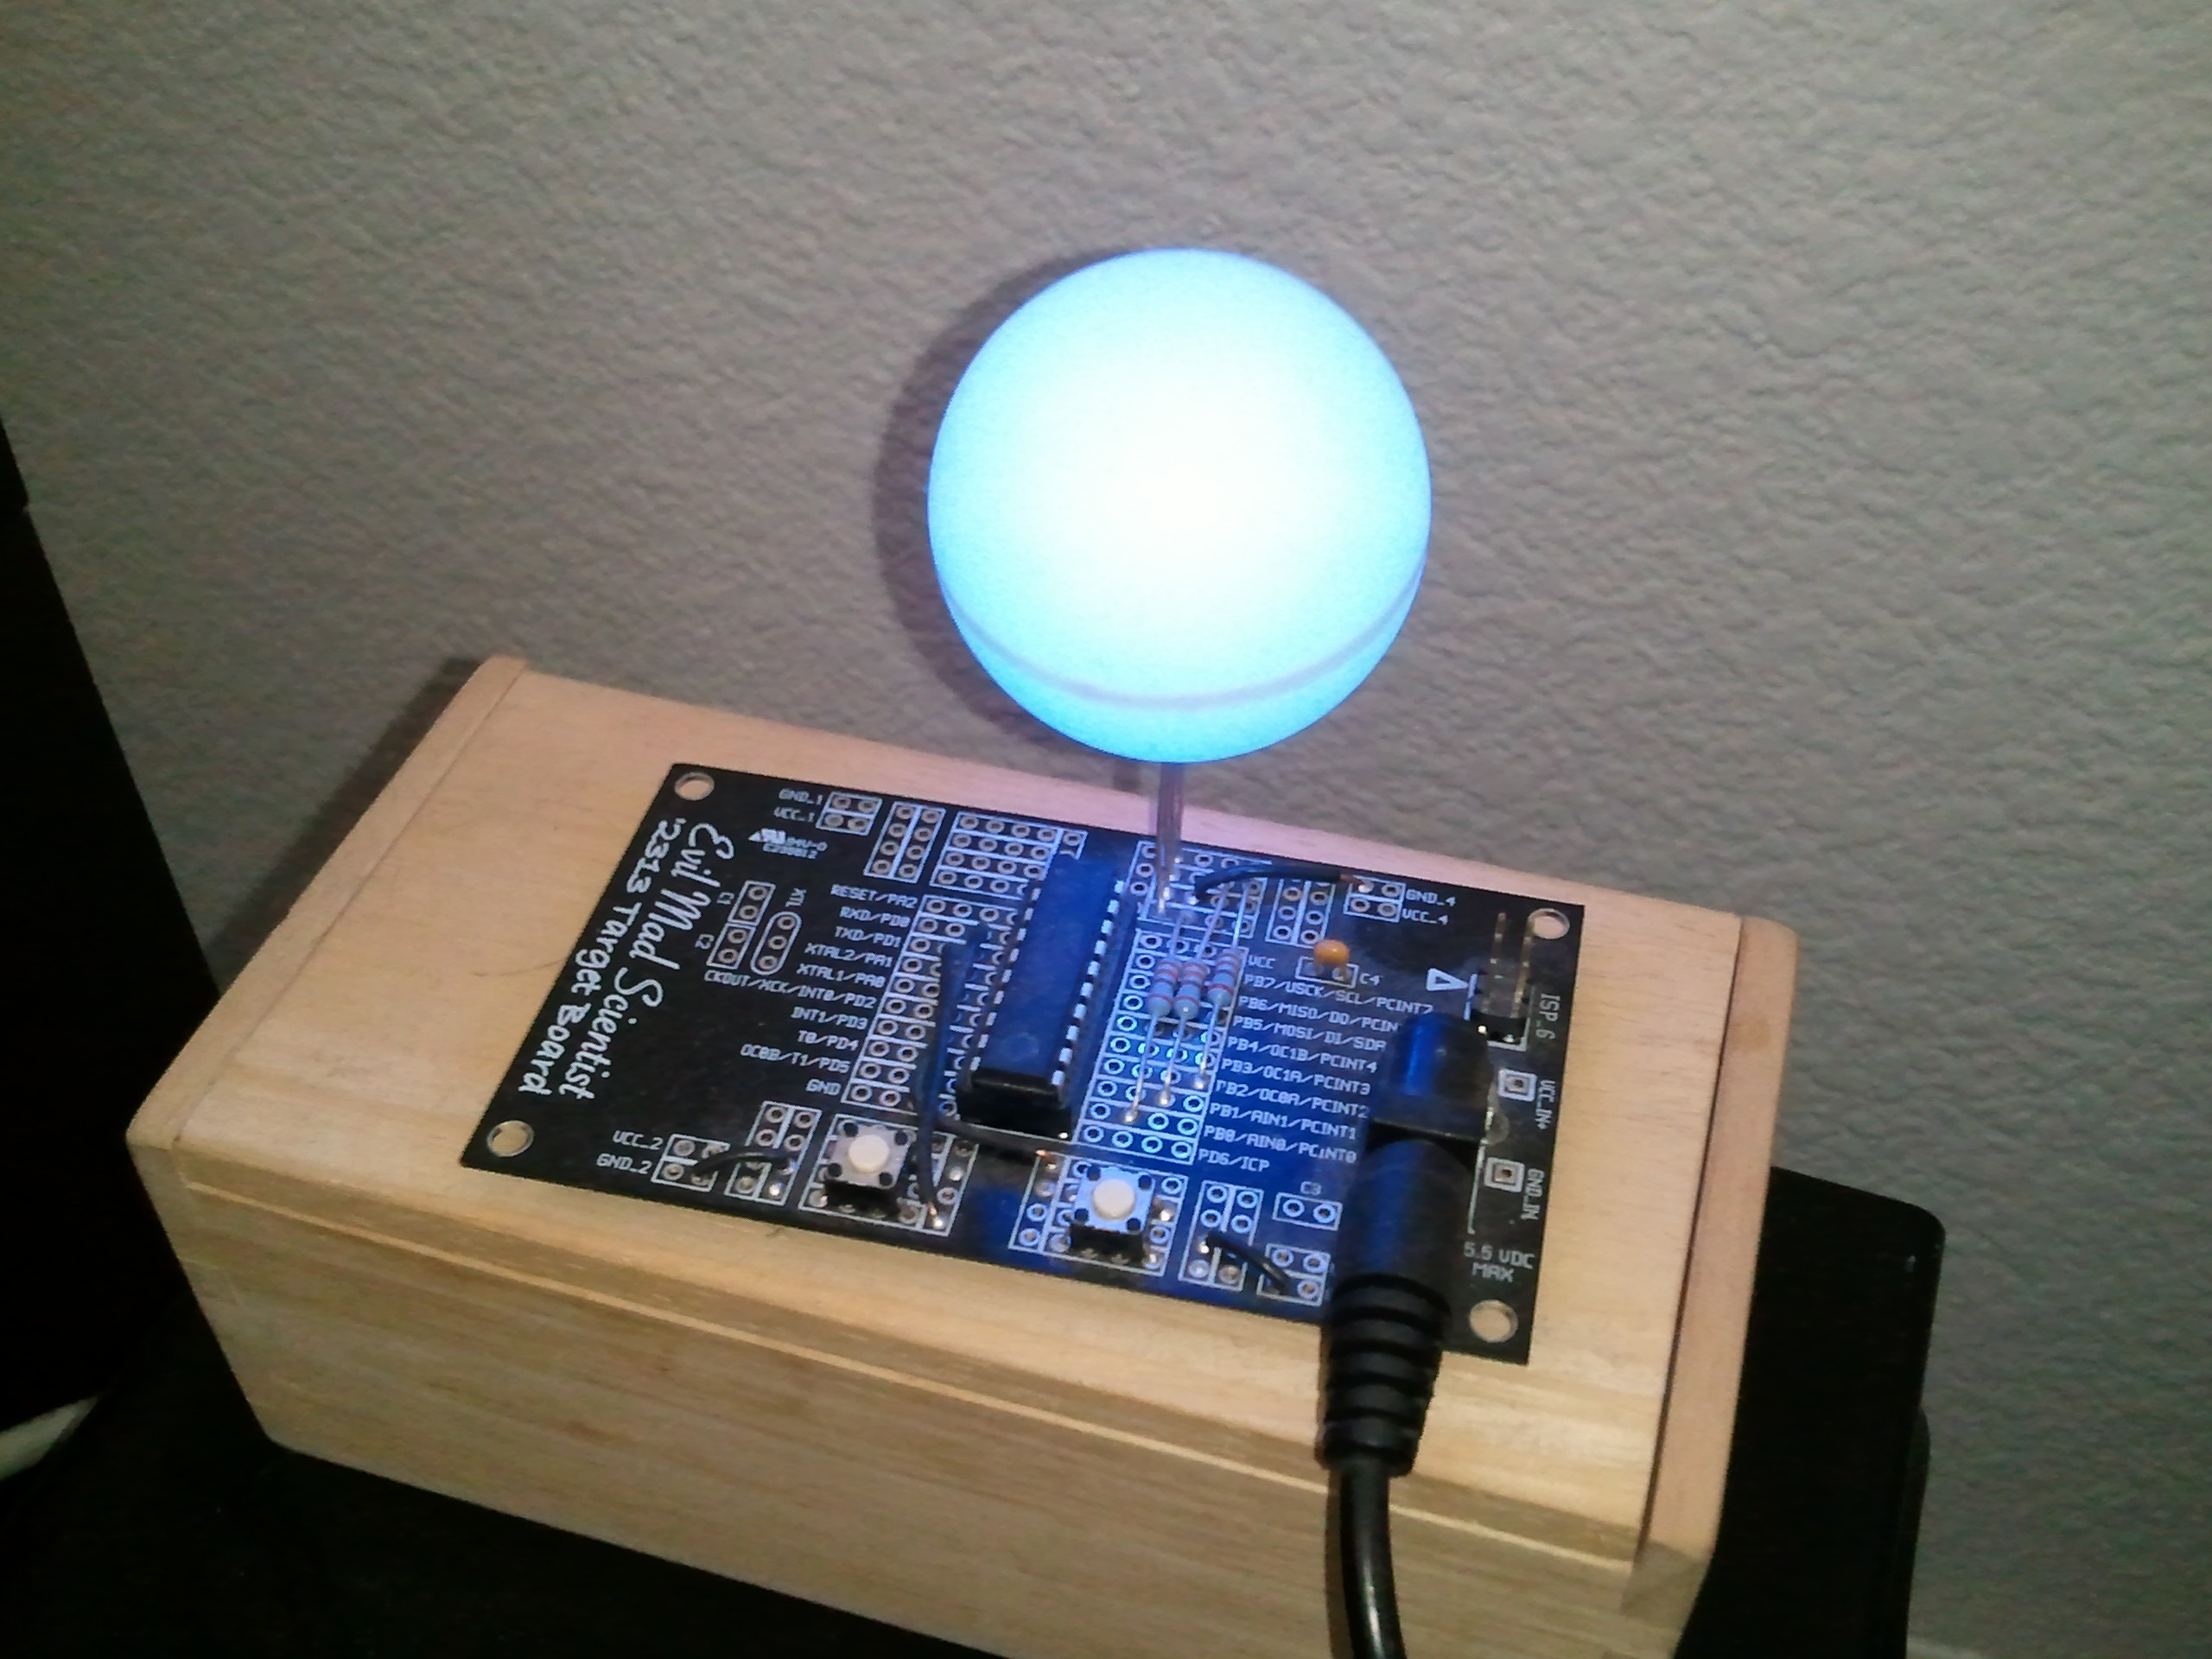 Rgb Led Glow Ball Project Circuit And Projects This